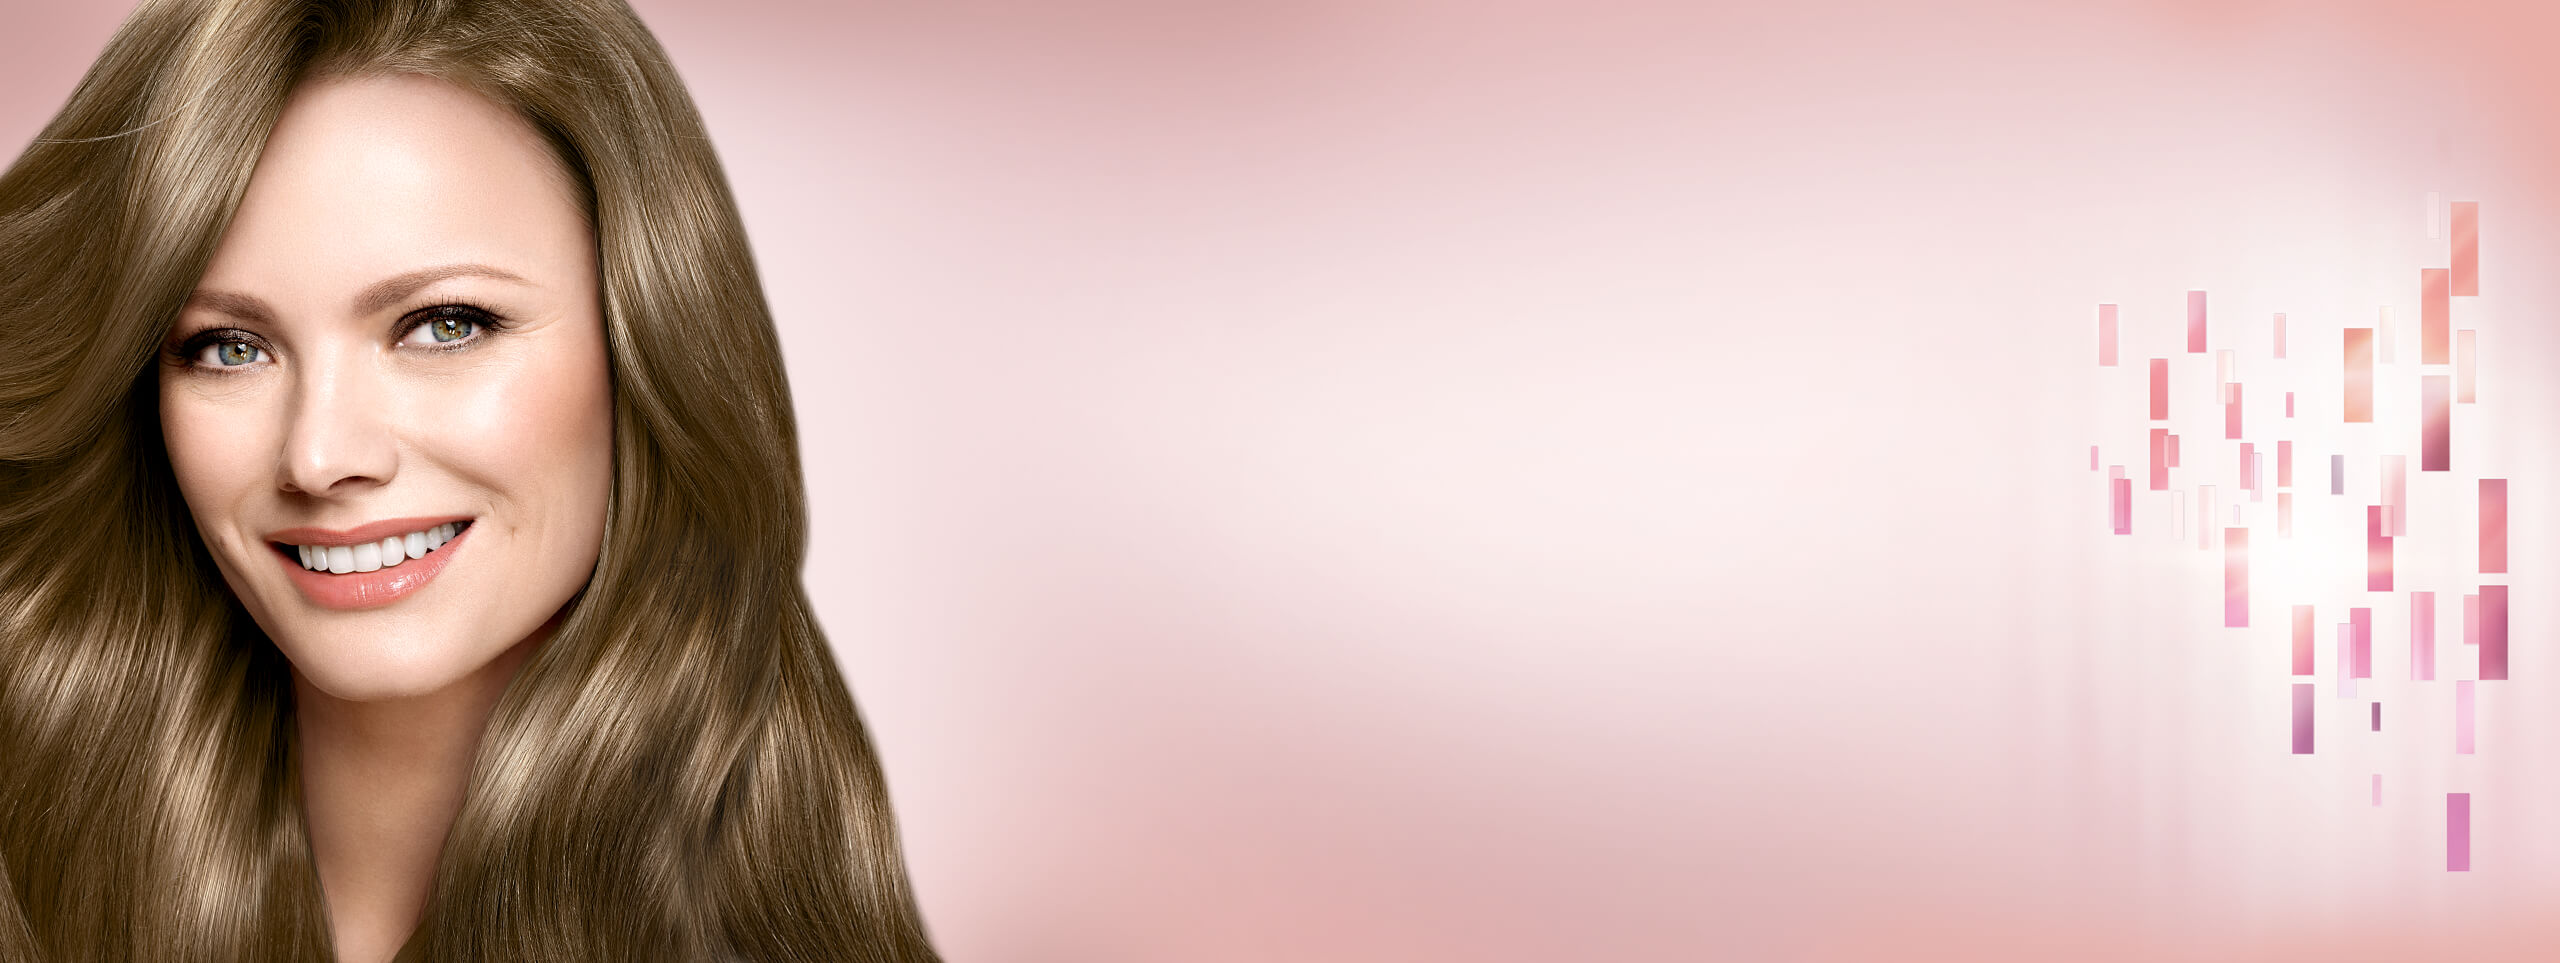 keratin_color_com_home_baseline_2560x963